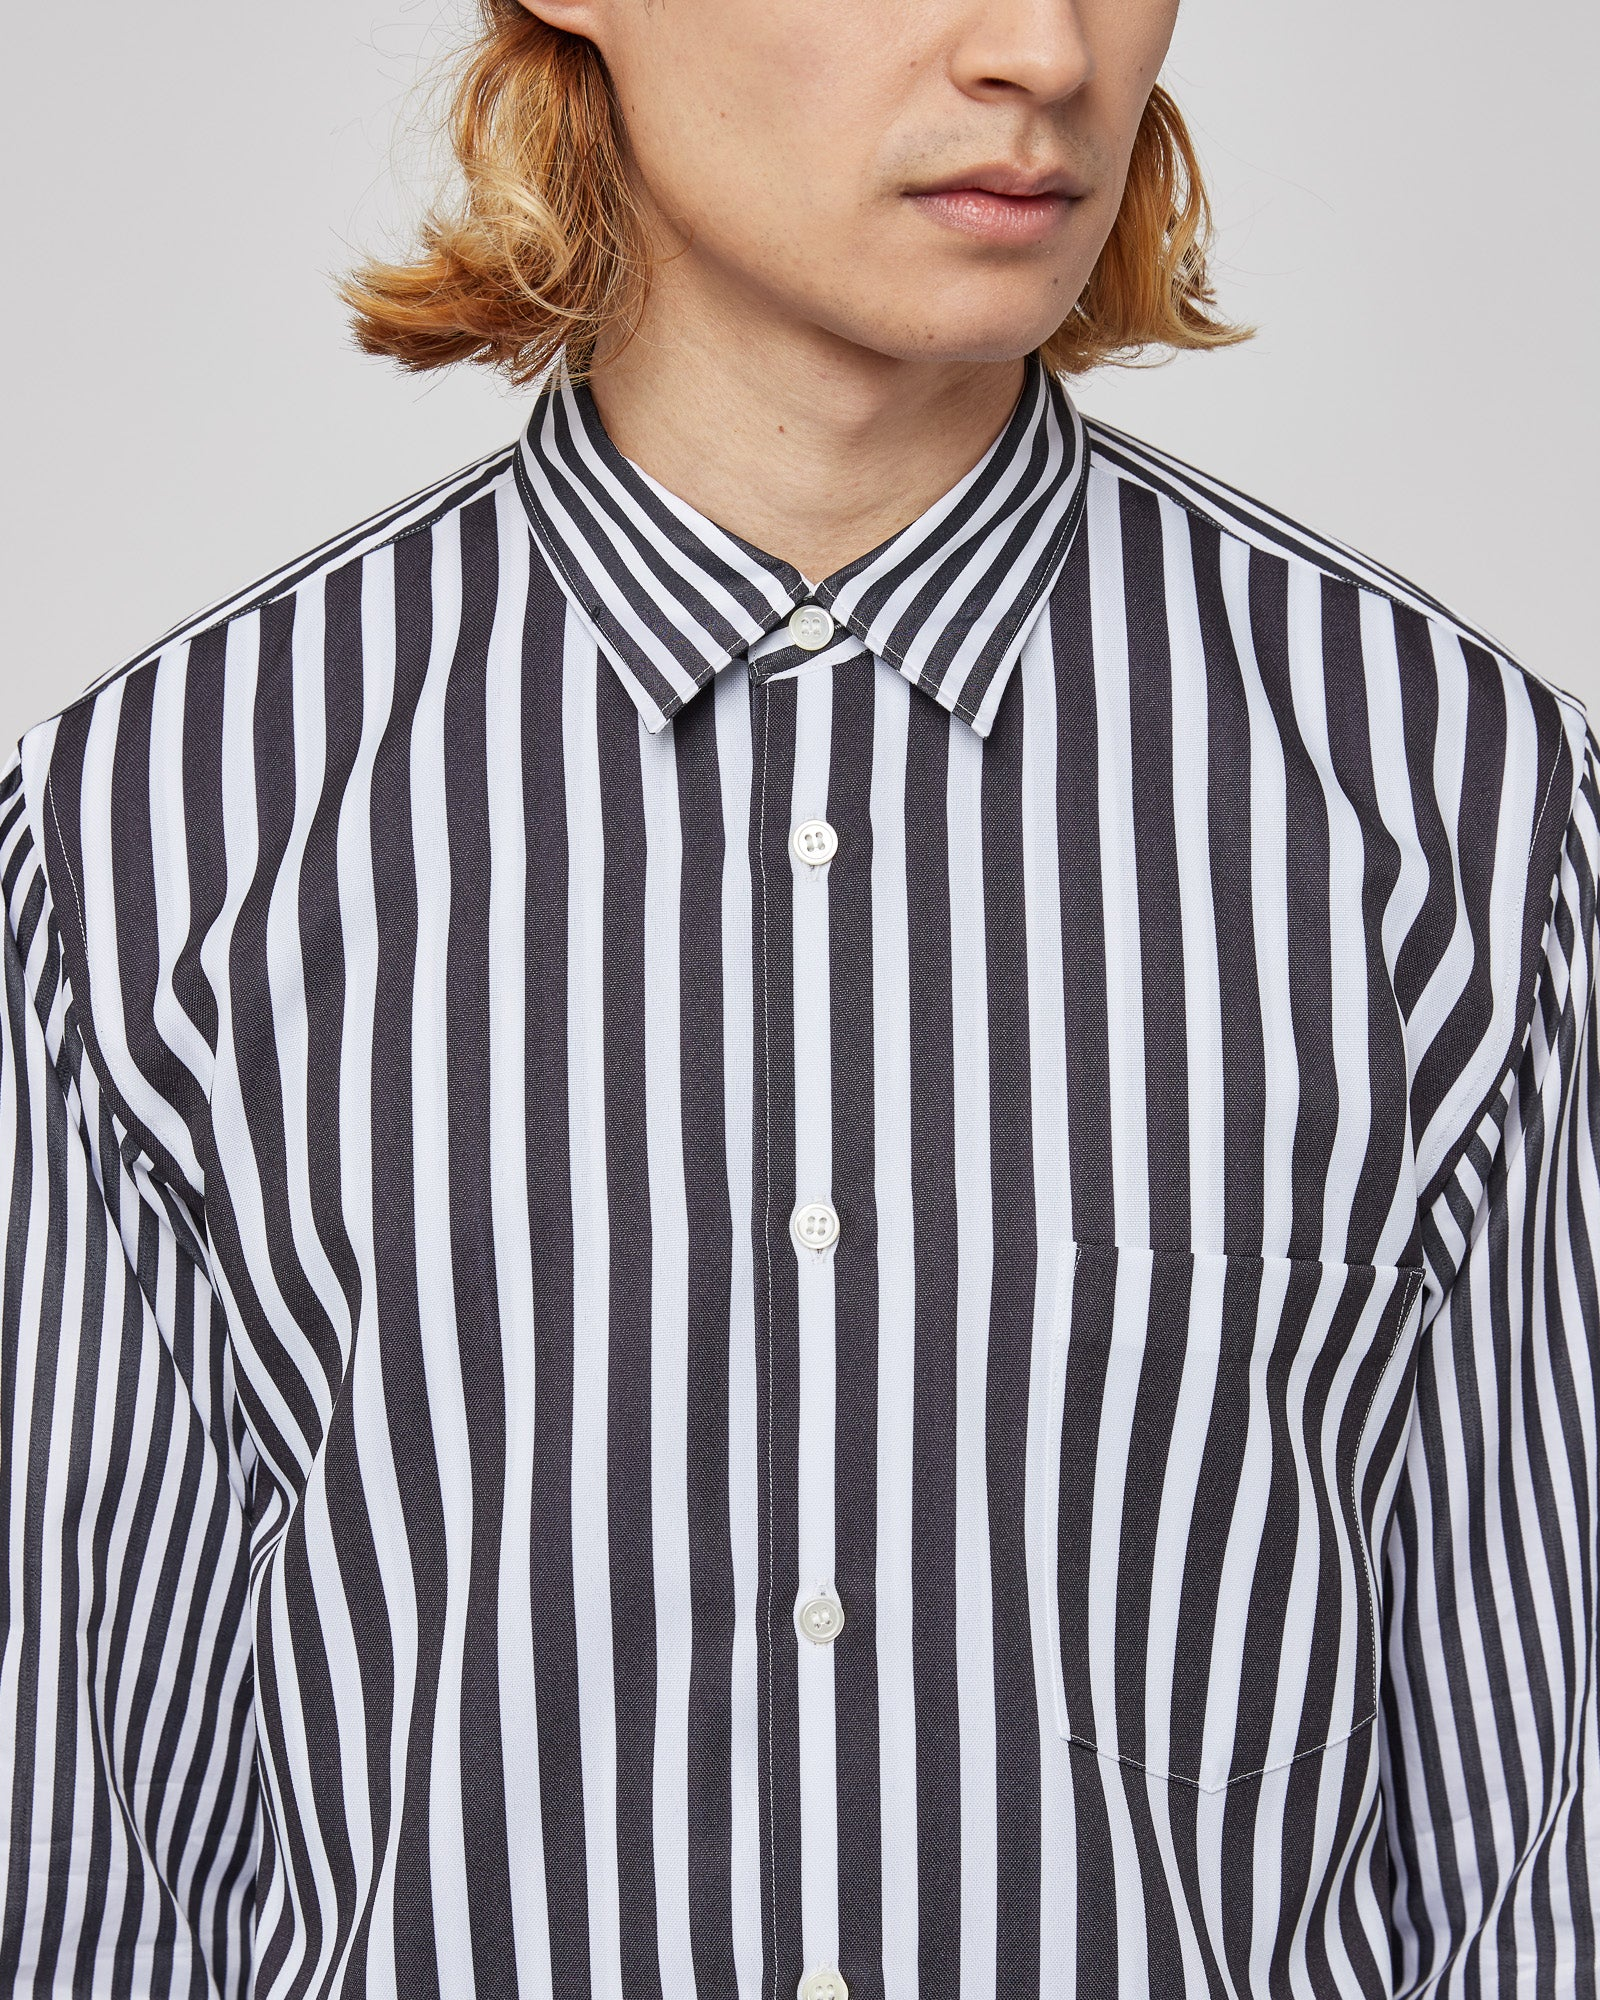 Two Layer Striped Shirt in Black/White